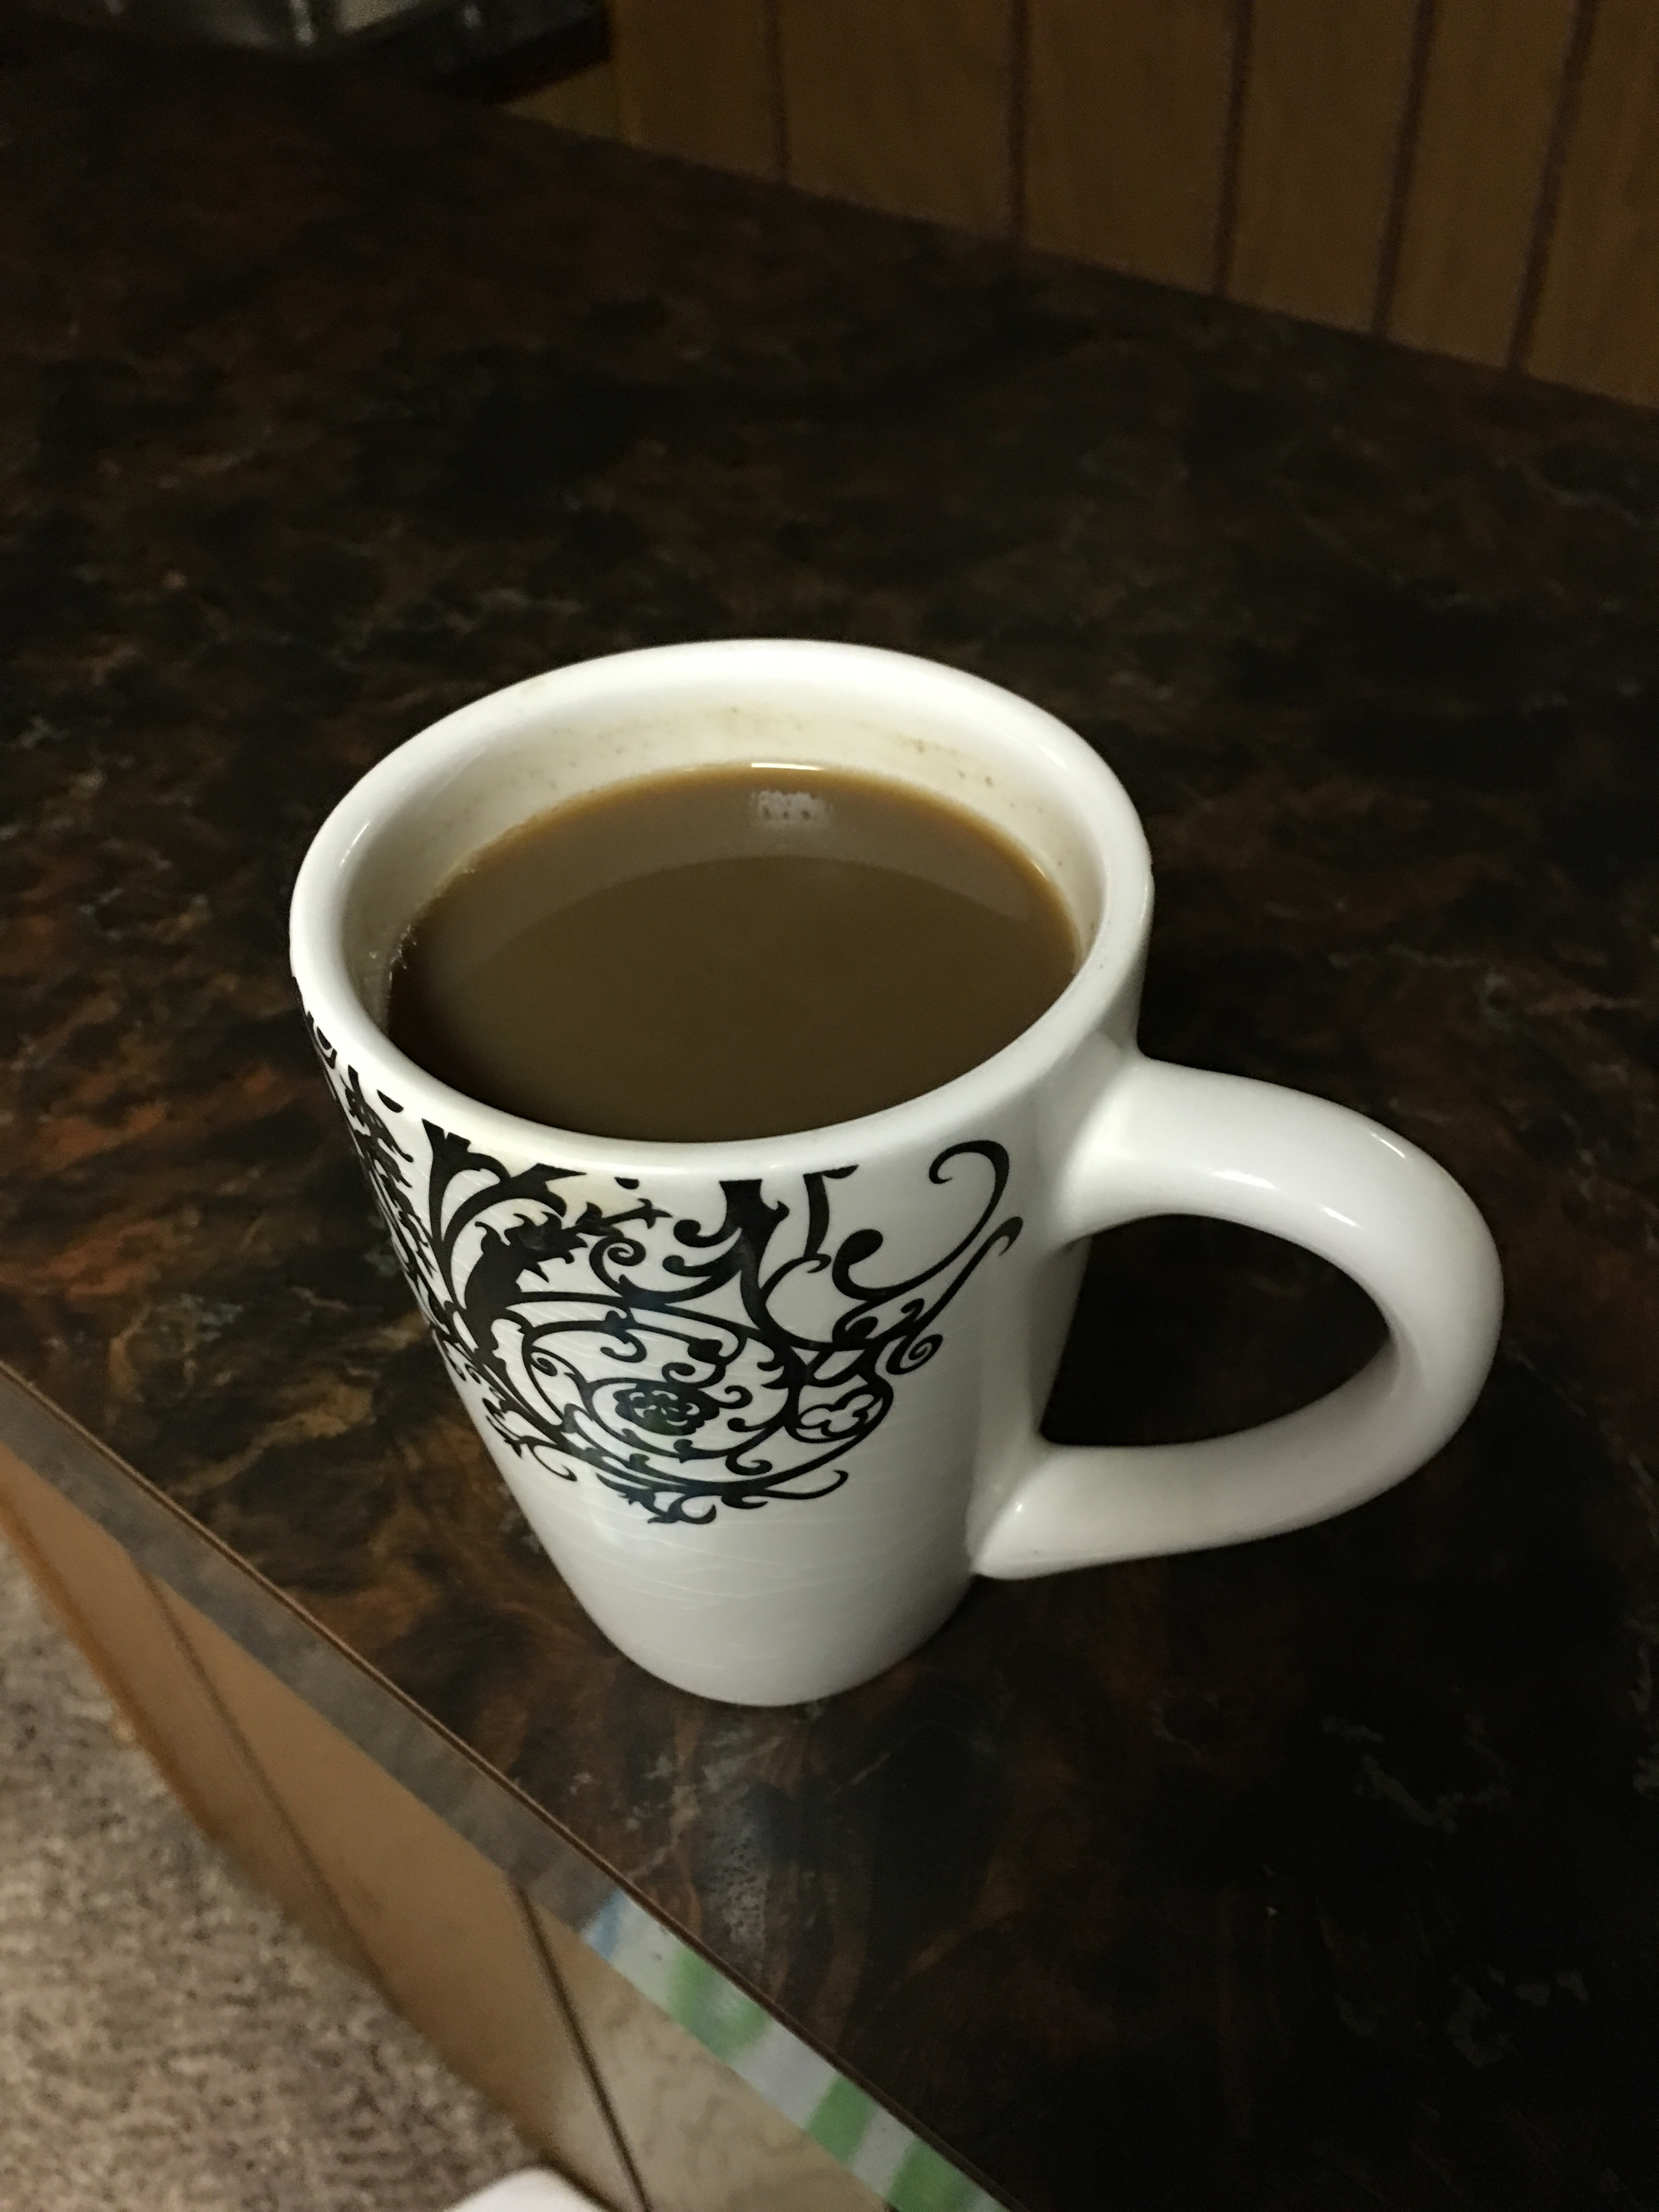 Libation Review Death Wish Coffee Leaf Enthusiast Reviews For Cigar Amp Pipe Lovers